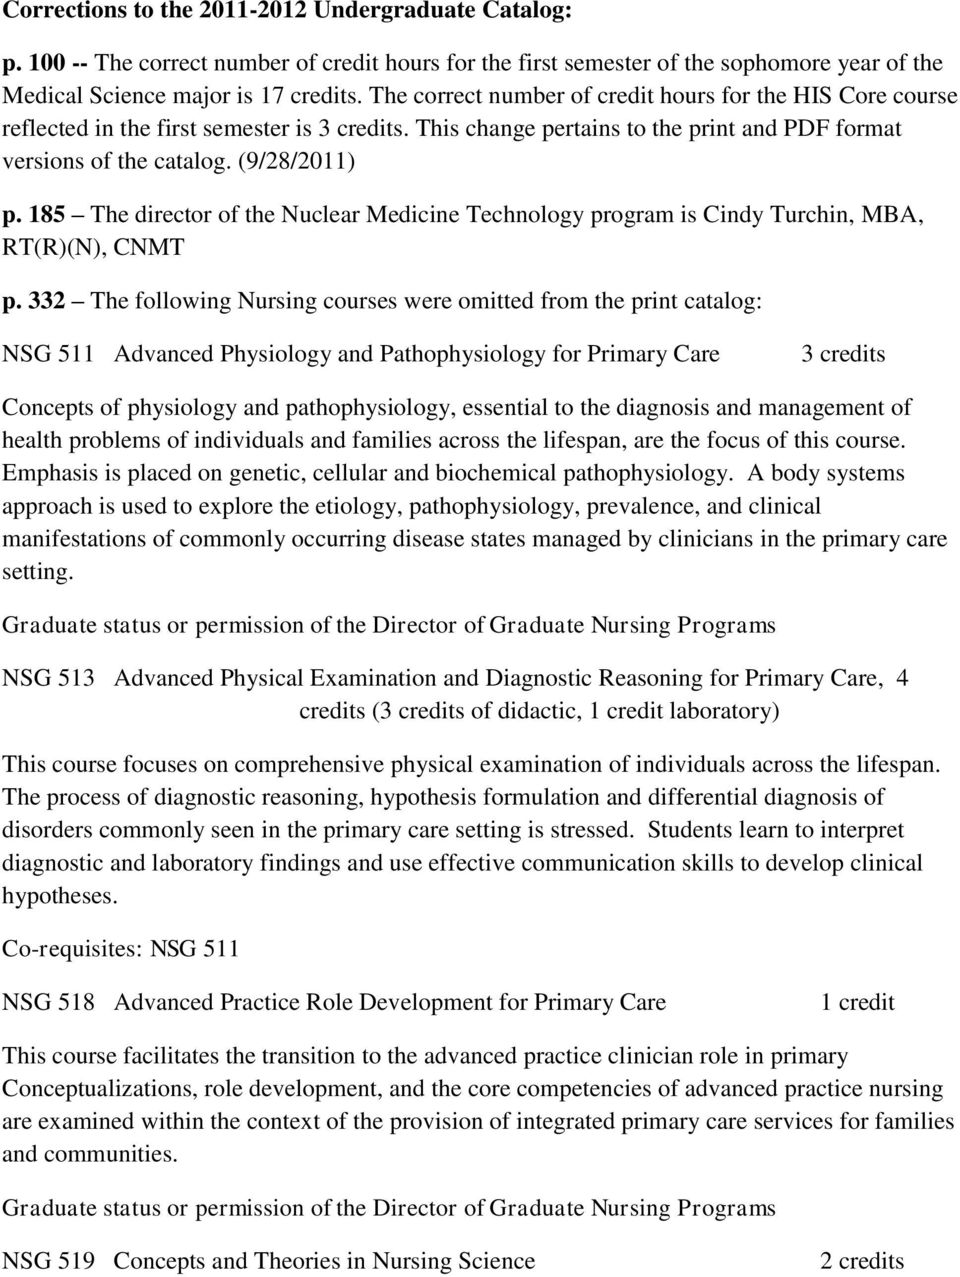 185 The director of the Nuclear Medicine Technology program is Cindy Turchin, MBA, RT(R)(N), CNMT p.